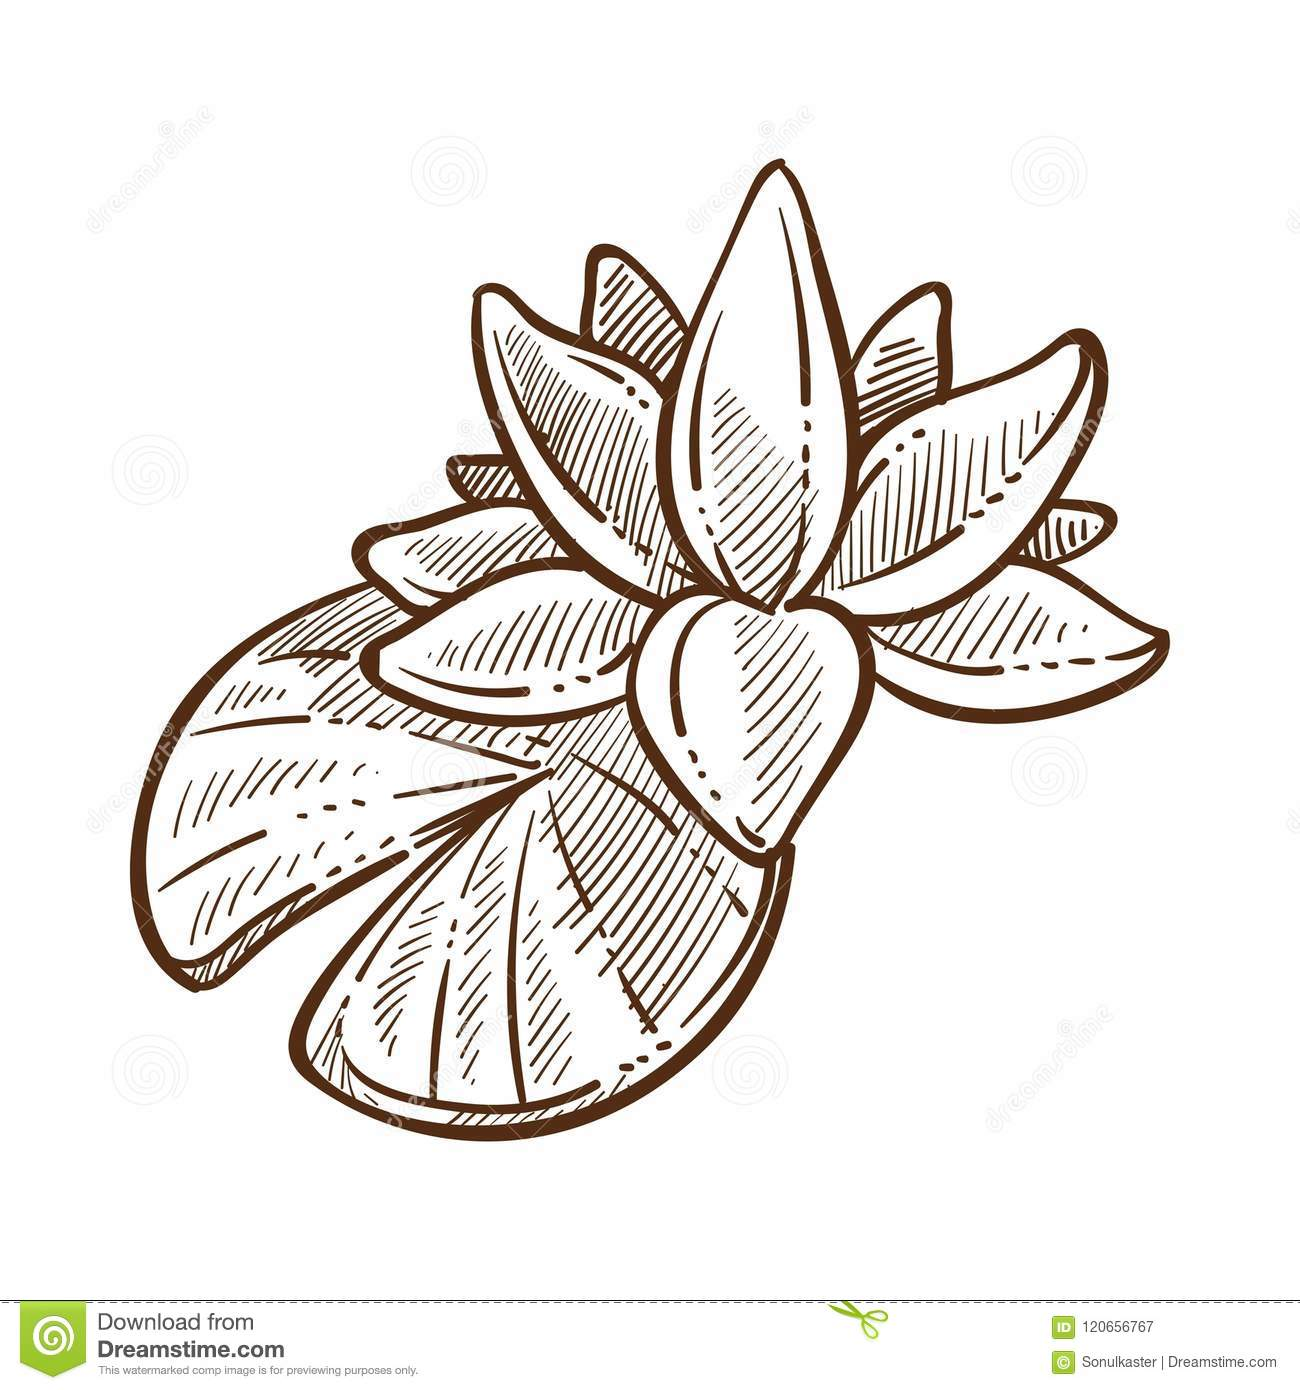 Lotus traditional symbolic flora of china monochrome sketch vector lotus traditional symbolic flora of china monochrome sketch vector illustration izmirmasajfo